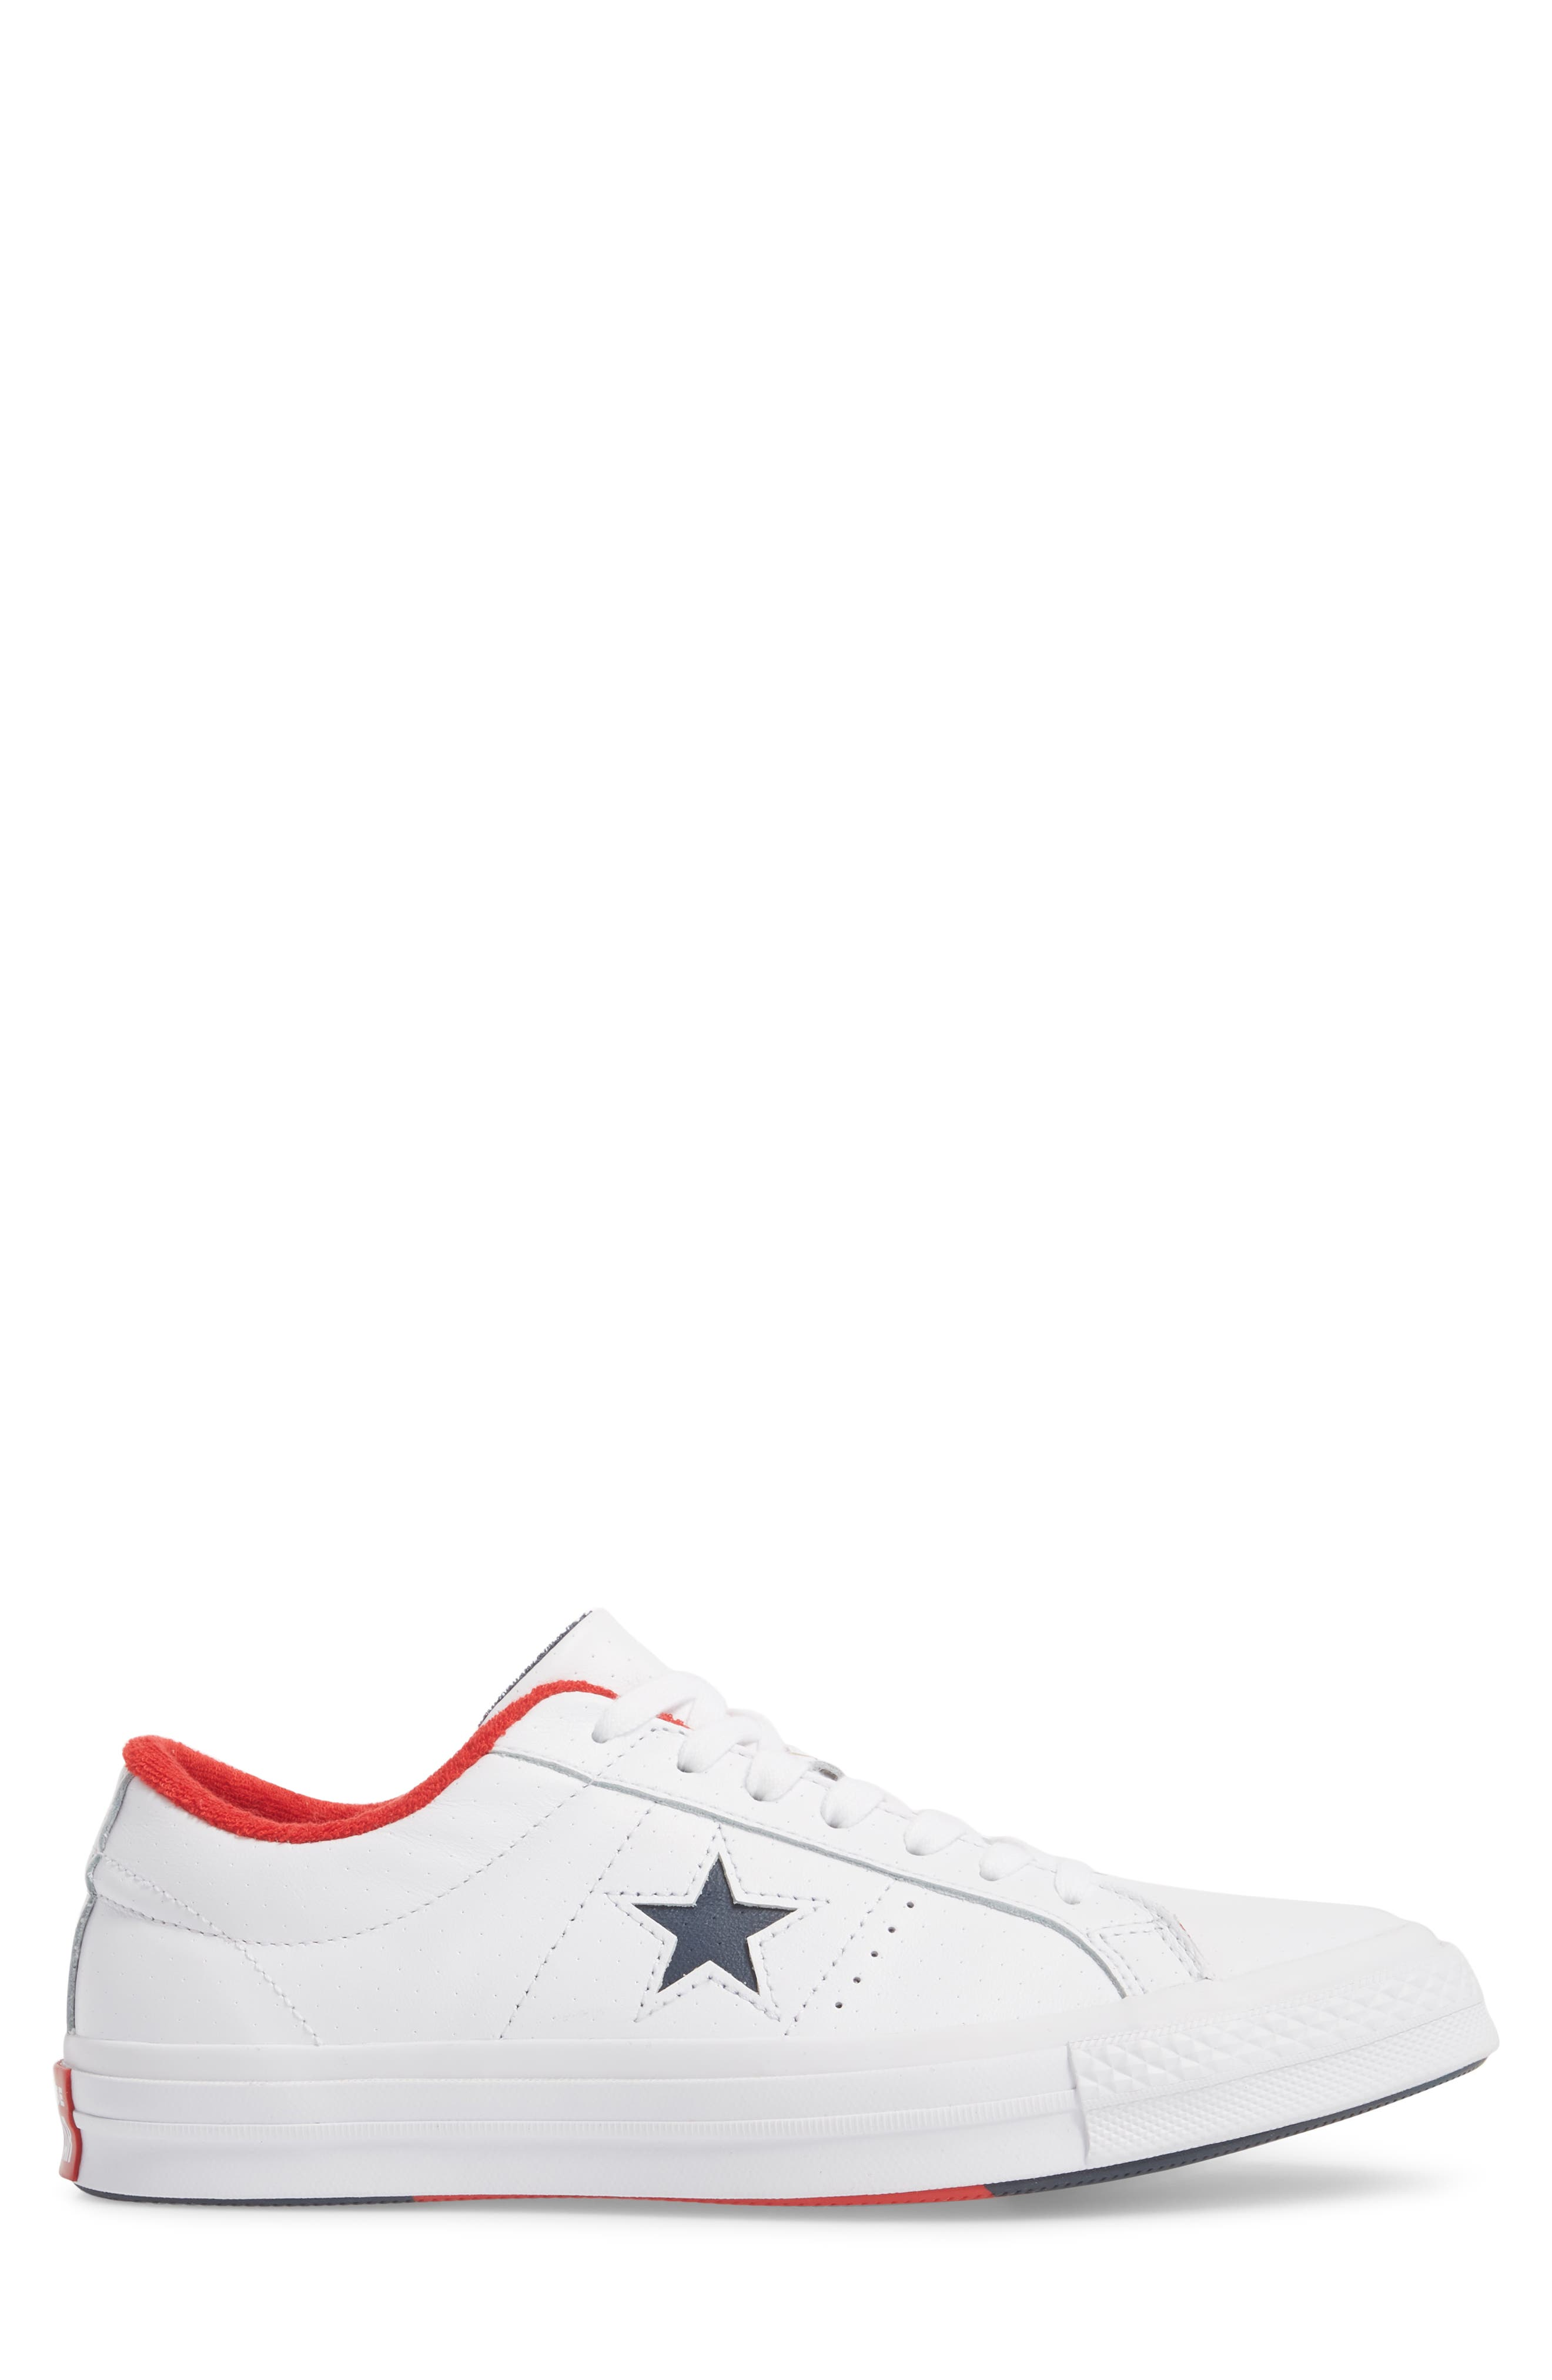 Chuck Taylor<sup>®</sup> One Star Grand Slam Sneaker,                             Alternate thumbnail 3, color,                             White/ Navy Leather